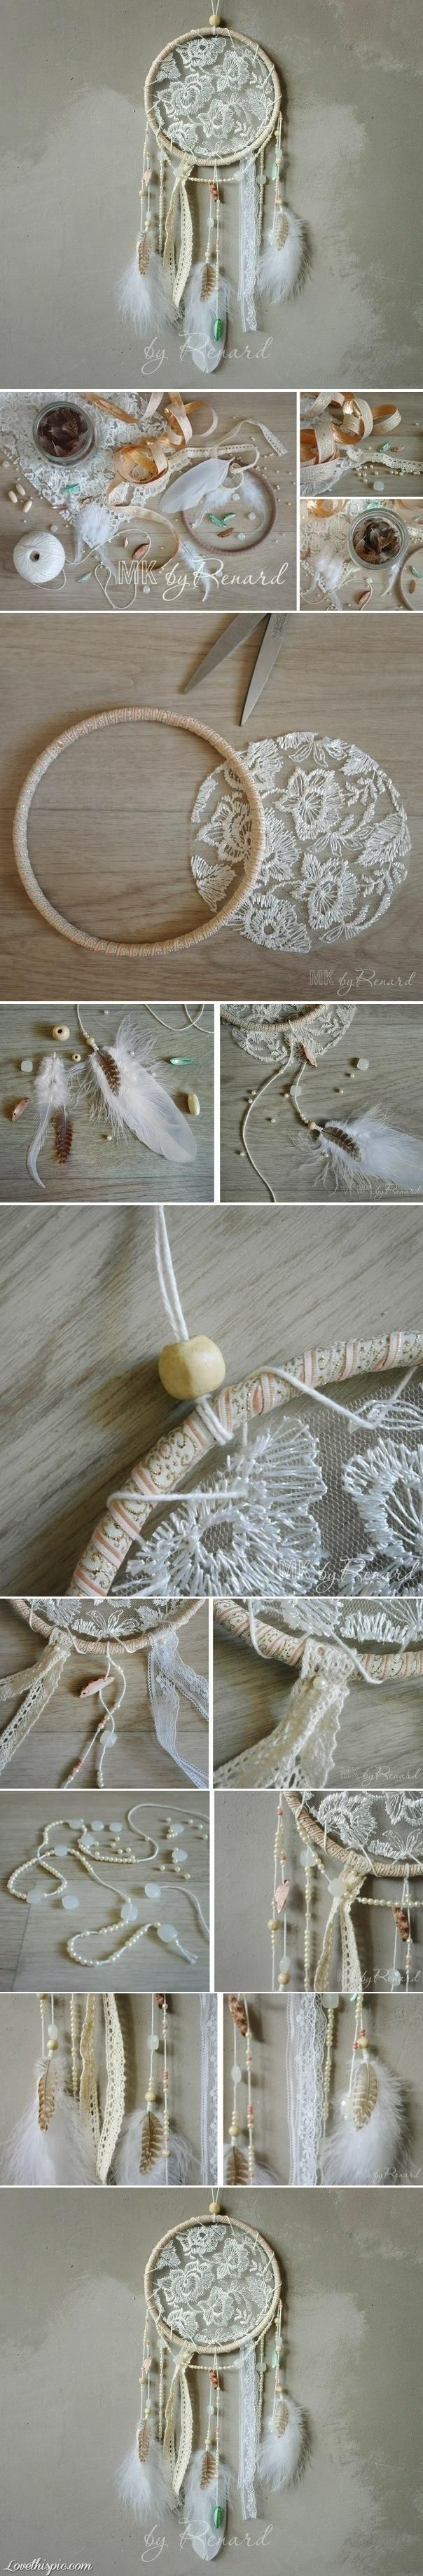 ´⁀°✿ •. Lace dream catcher DIY Tutorial How-To